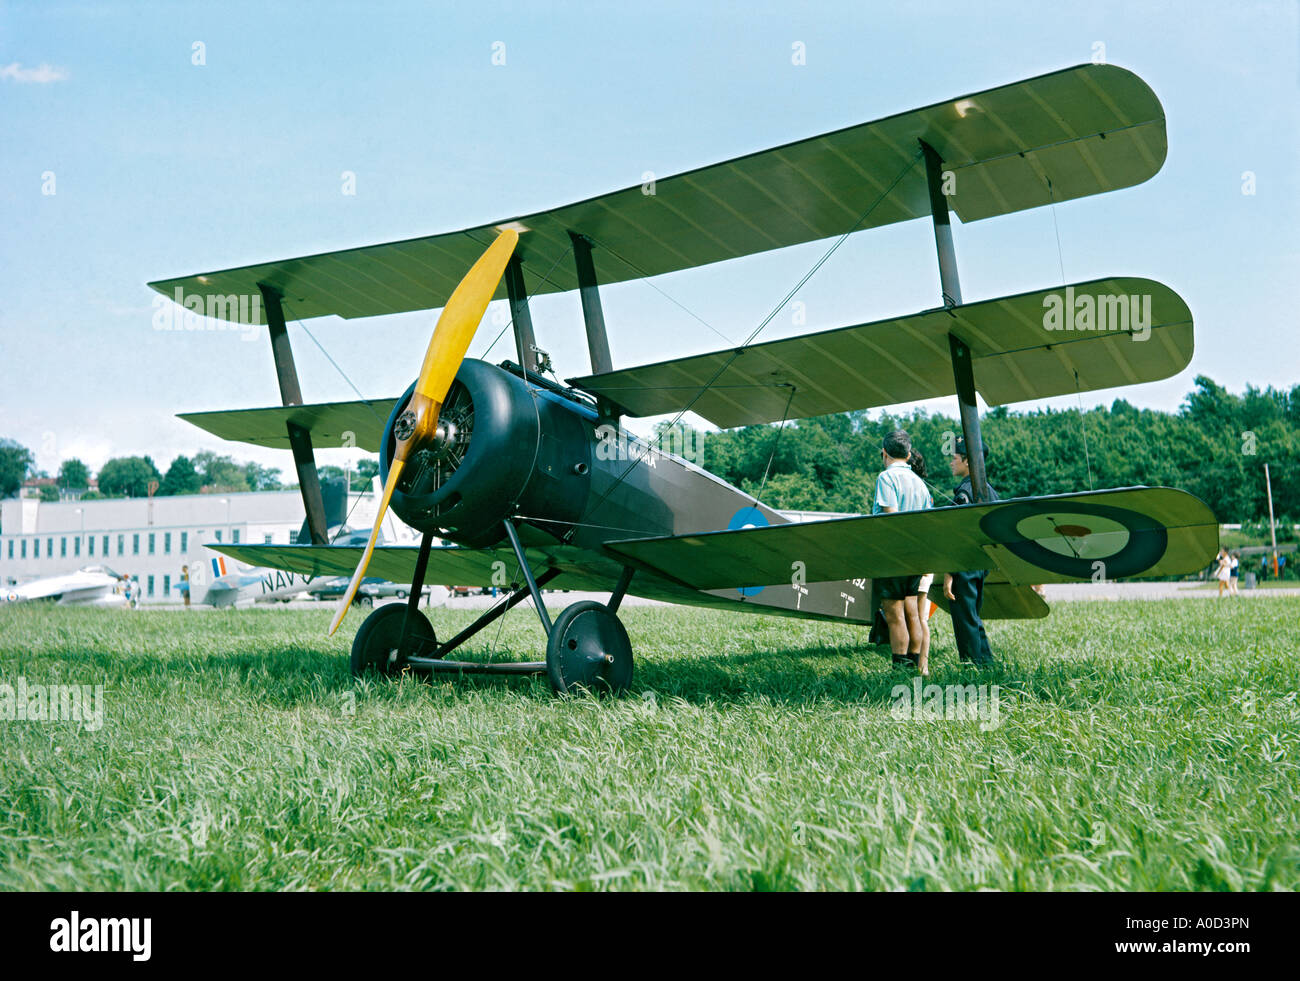 Sopwith Triplane Black Maria at Rockcliffe Air Museum Ottawa Canada - Stock Image